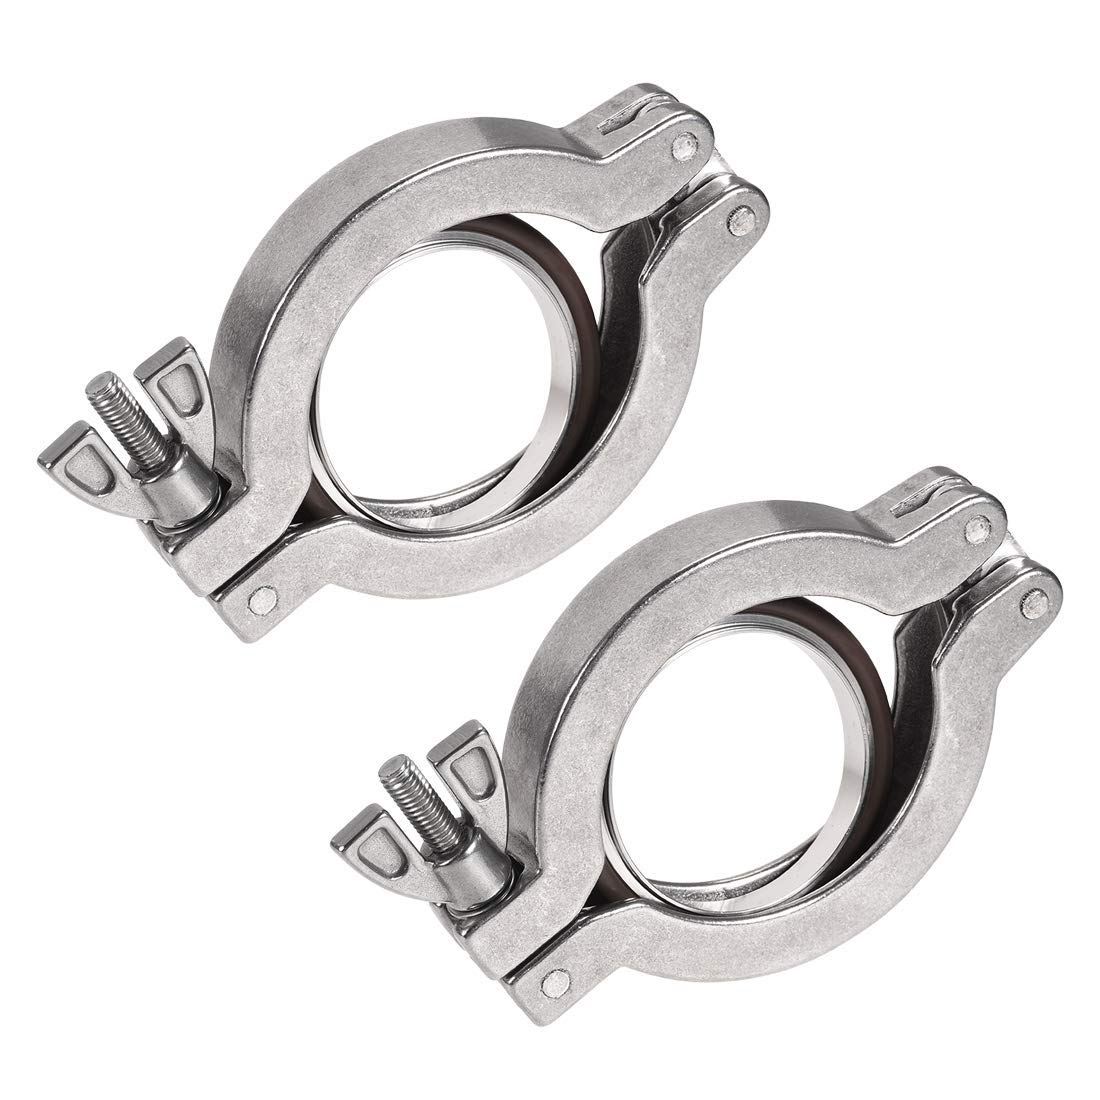 Sanitary Tri-Clamp 68mm X 47mm KF40 Single Pin Tri Clamp Wing Nut with Central Ring for TC Splint 2 Pieces